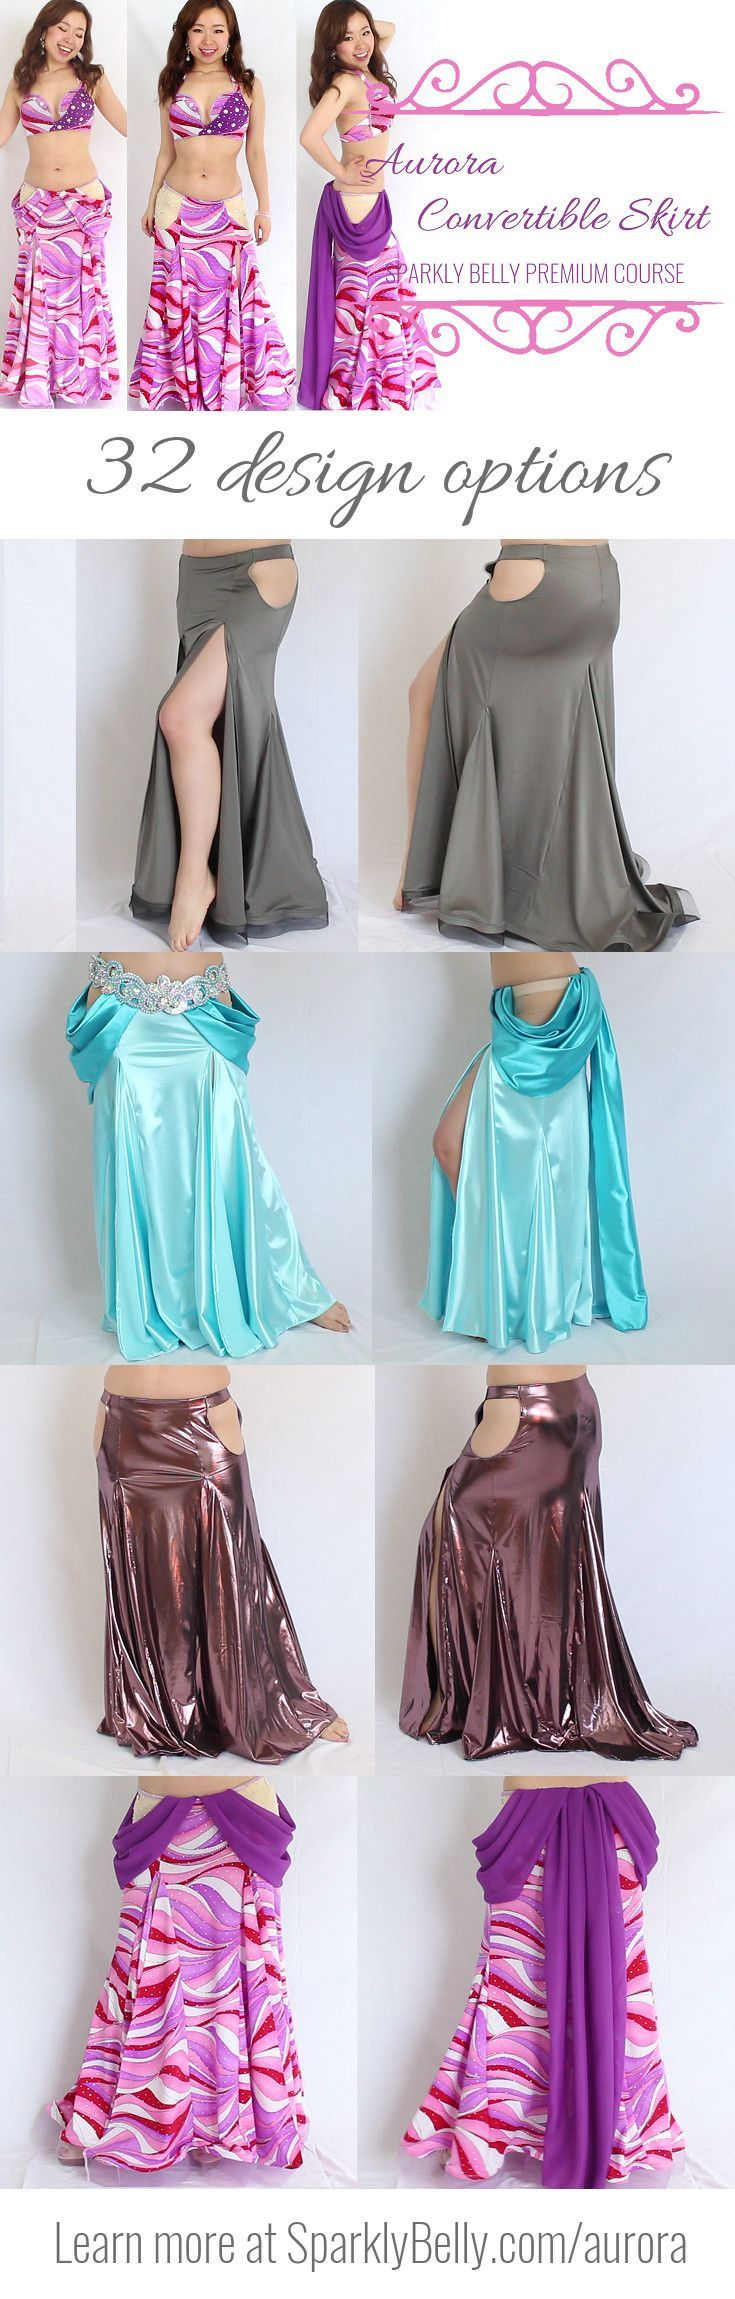 32 beautiful design options in 1 course - Aurora Convertible Skirt! #BellyDancingCostumes